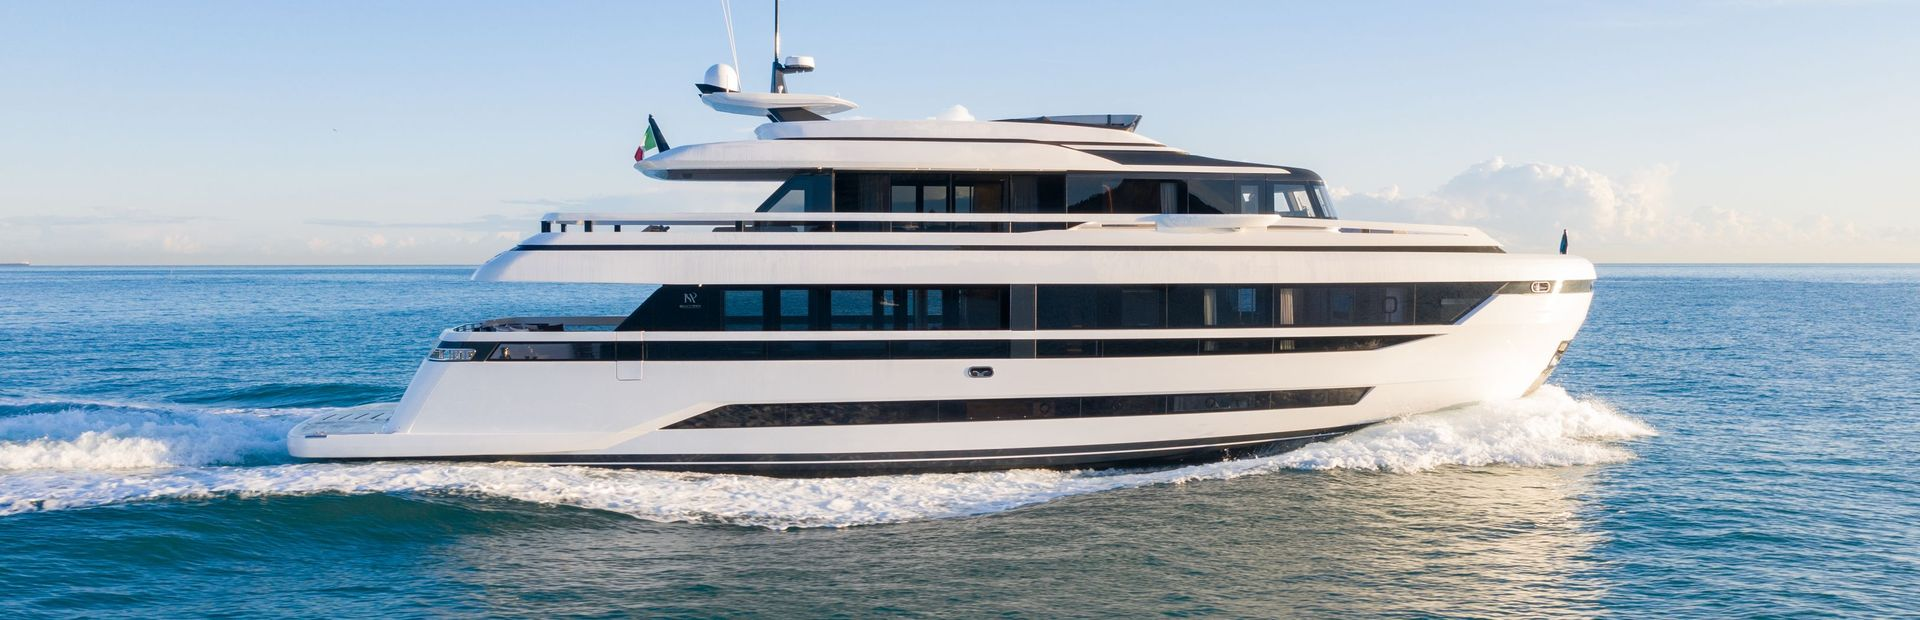 Extra 93 Yacht Charter